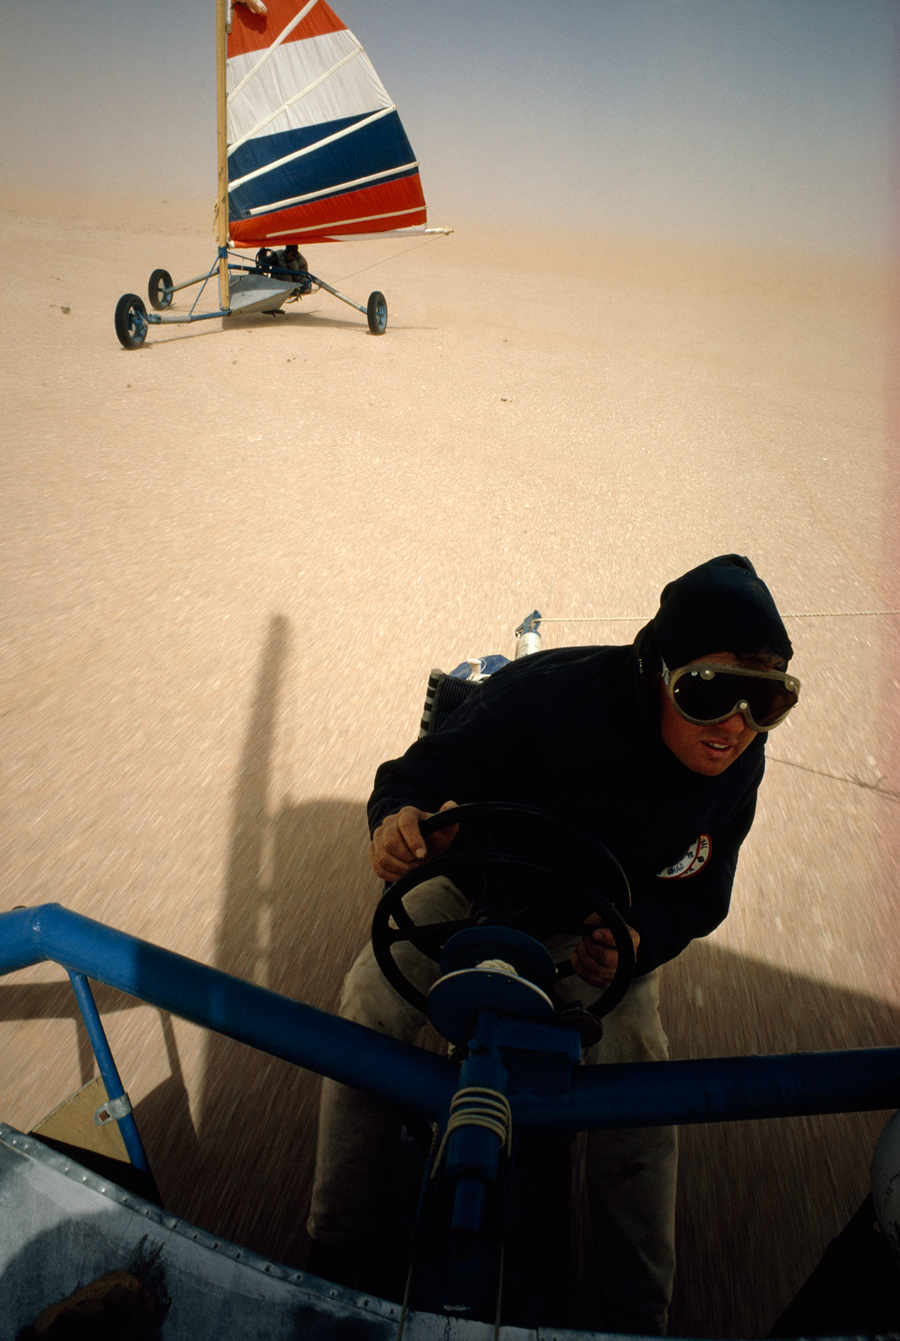 A land yacht pilot grips one wheel to steer and one to control sails in the Sahara Desert, Mauritania, November 1967.  PHOTOGRAPH BY JONATHAN BLAIR, NATIONAL GEOGRAPHIC